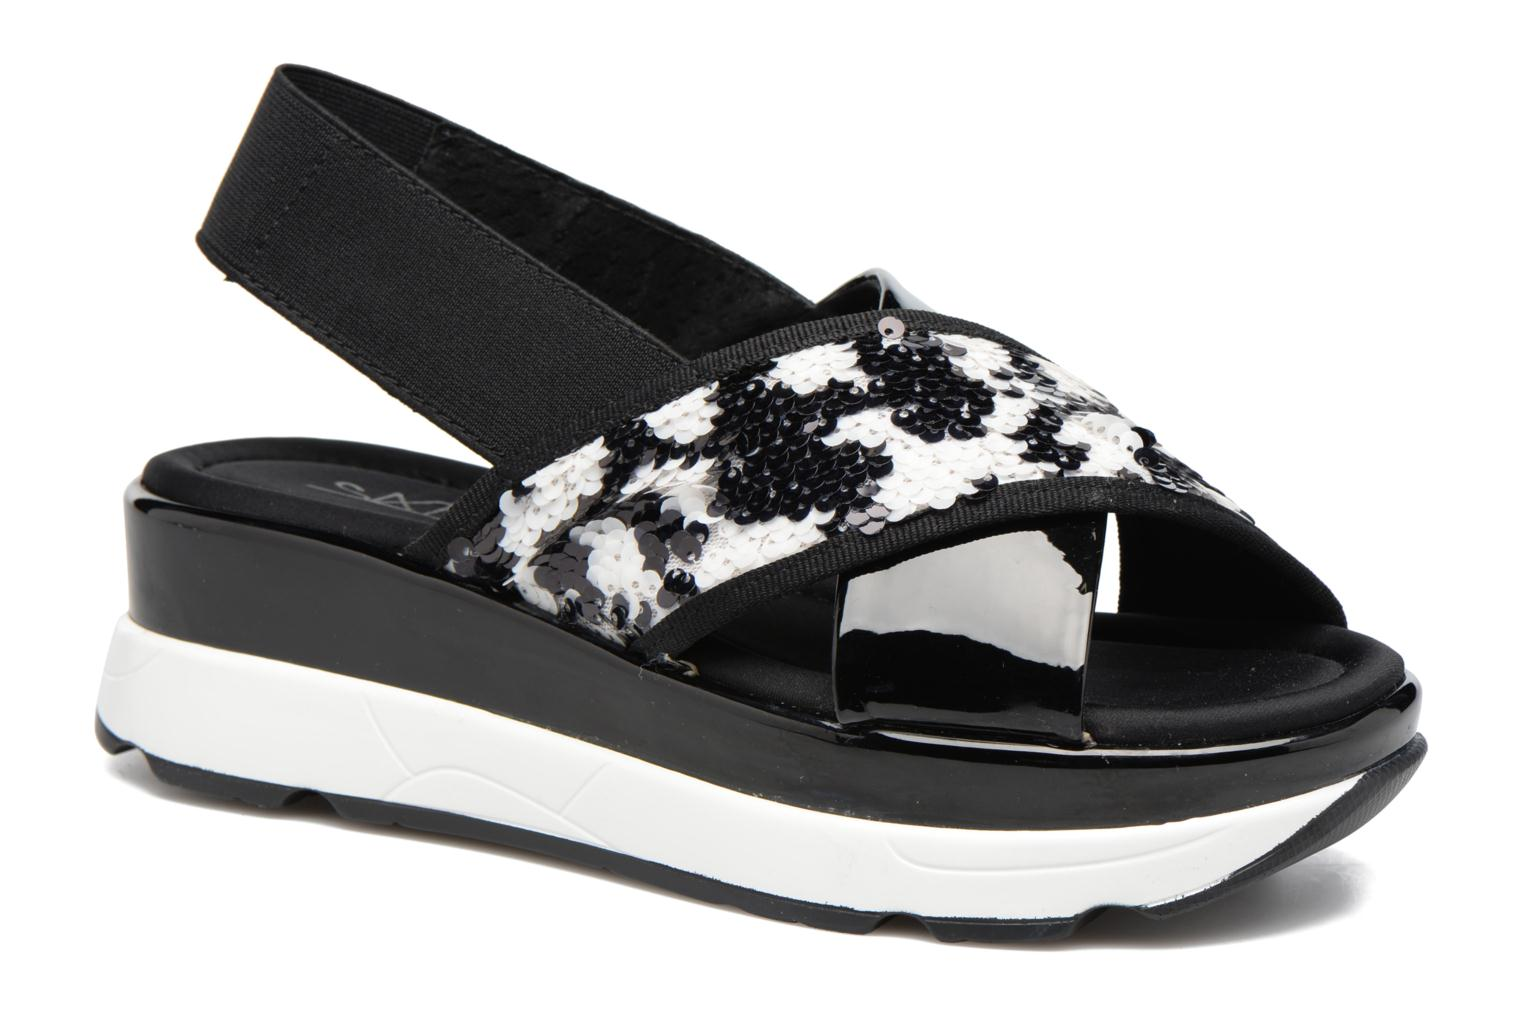 Marques Chaussure femme Sixty Seven femme Oden 78602 Kelsi Negro/Flase Blanco